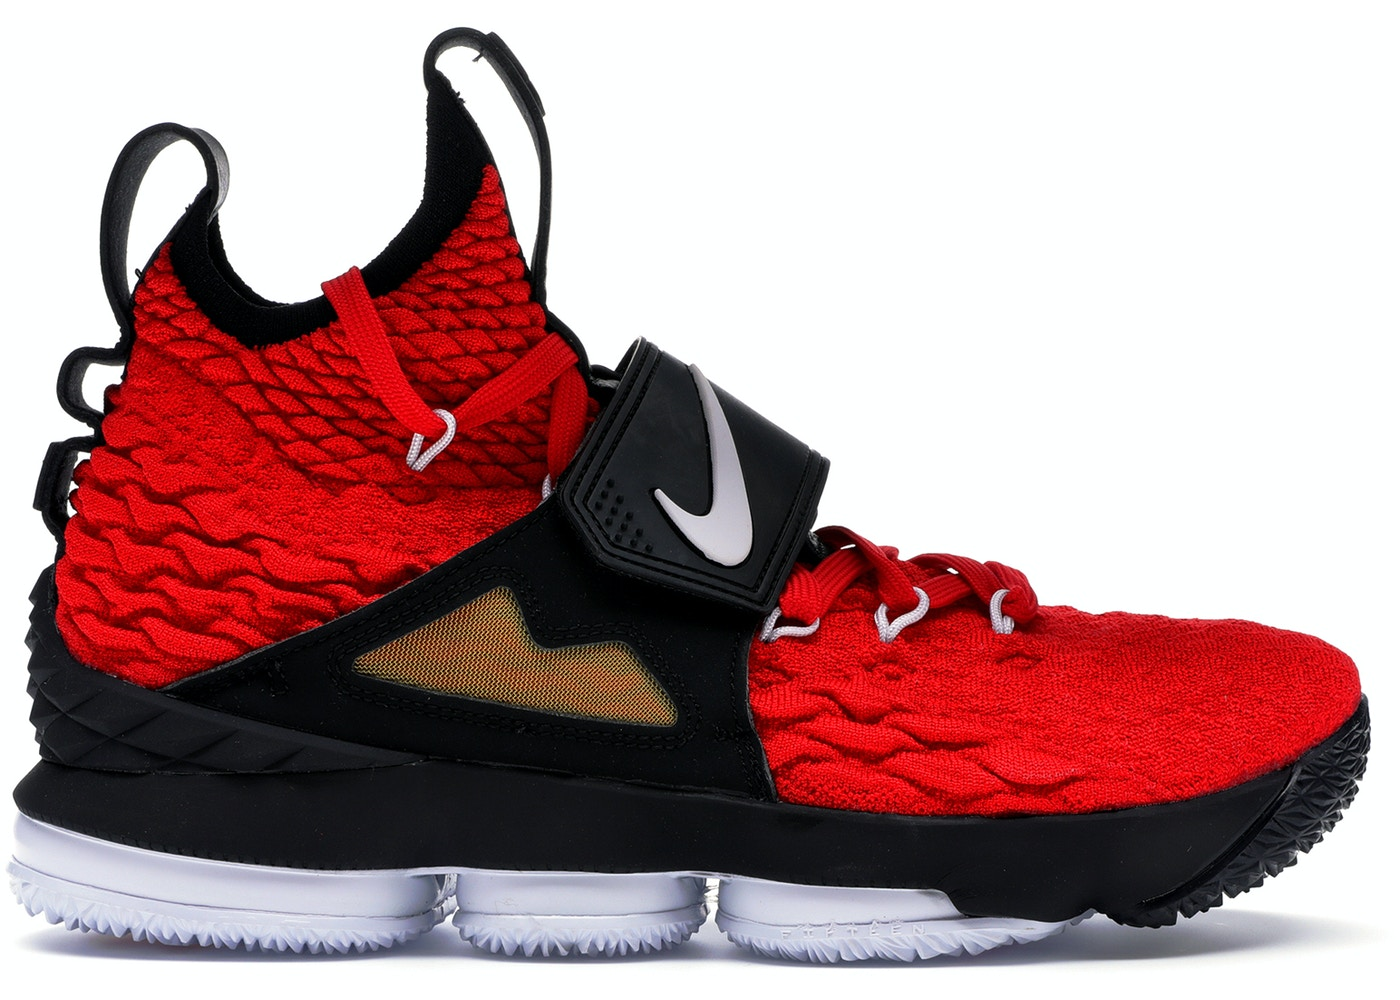 sale retailer 61612 5d7a3 Buy Nike LeBron 15 Shoes & Deadstock Sneakers